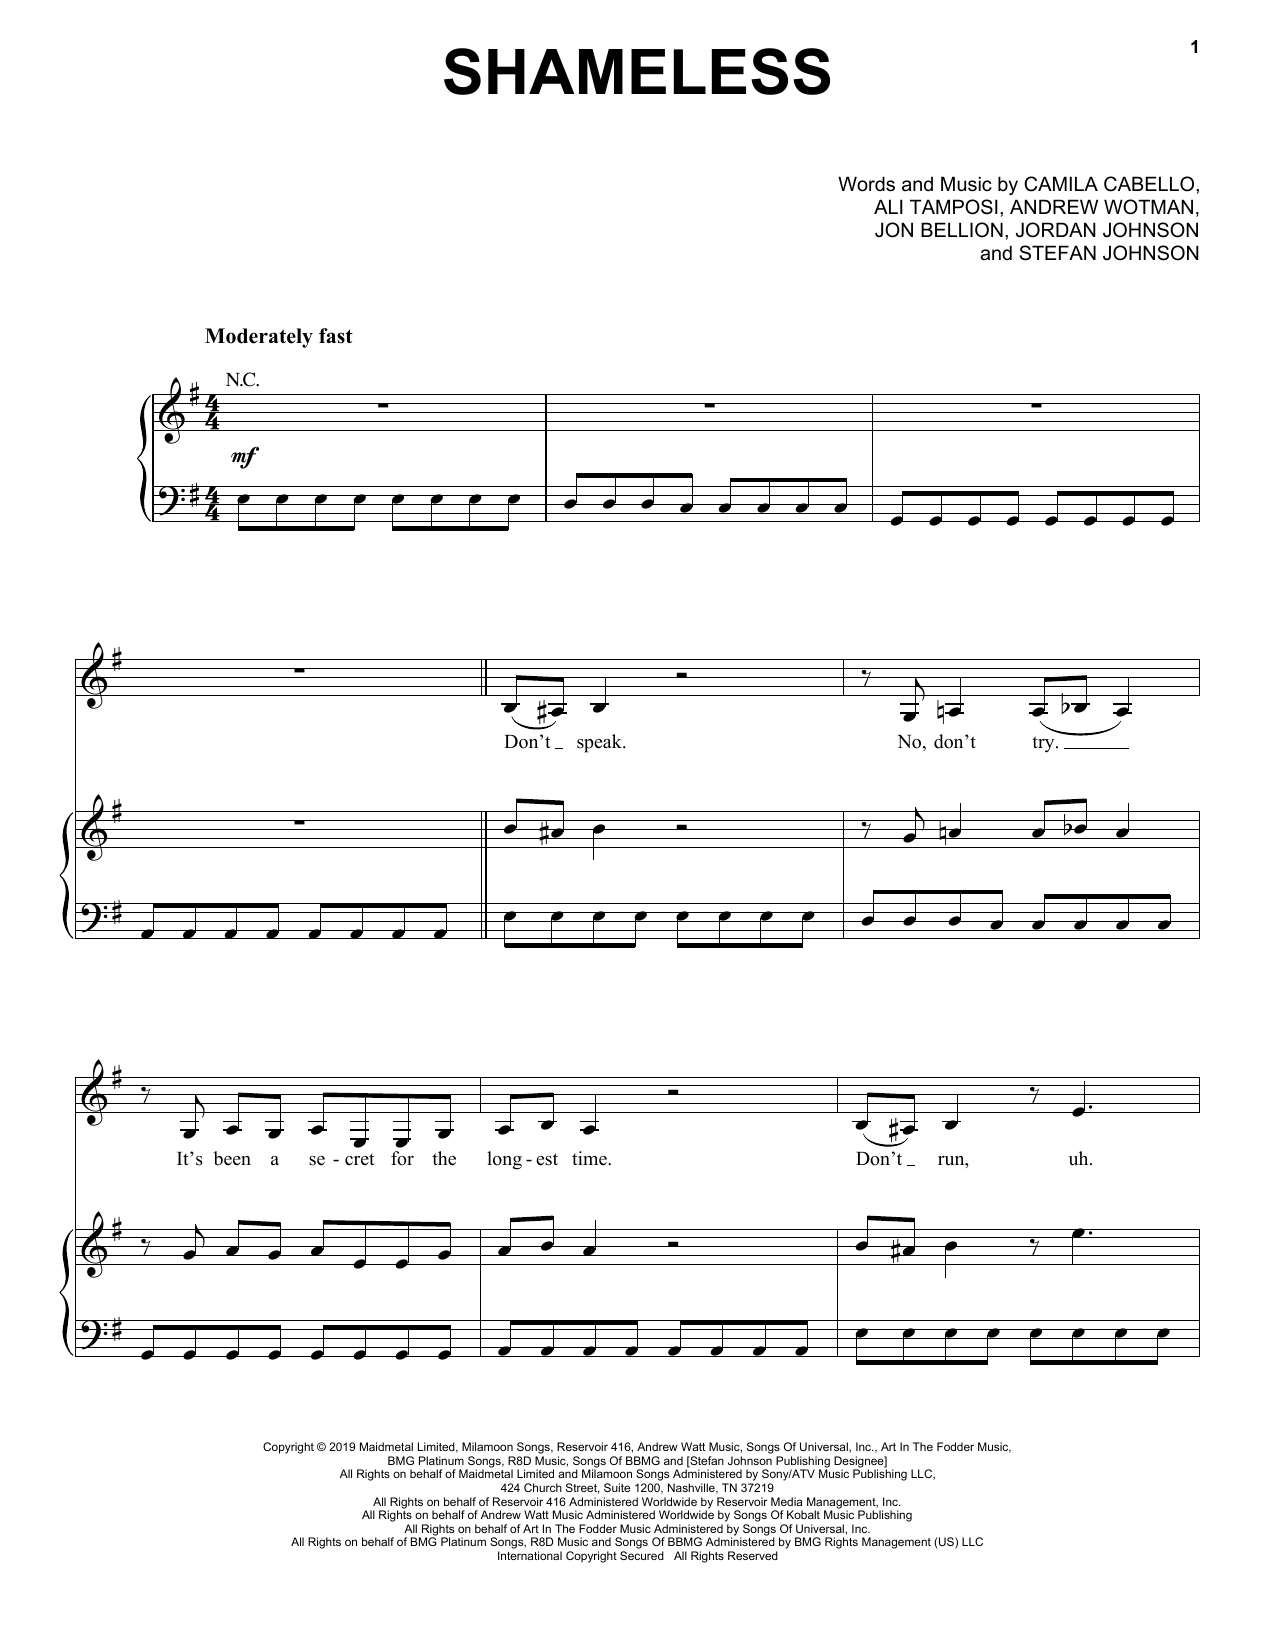 Camila Cabello Shameless sheet music notes and chords